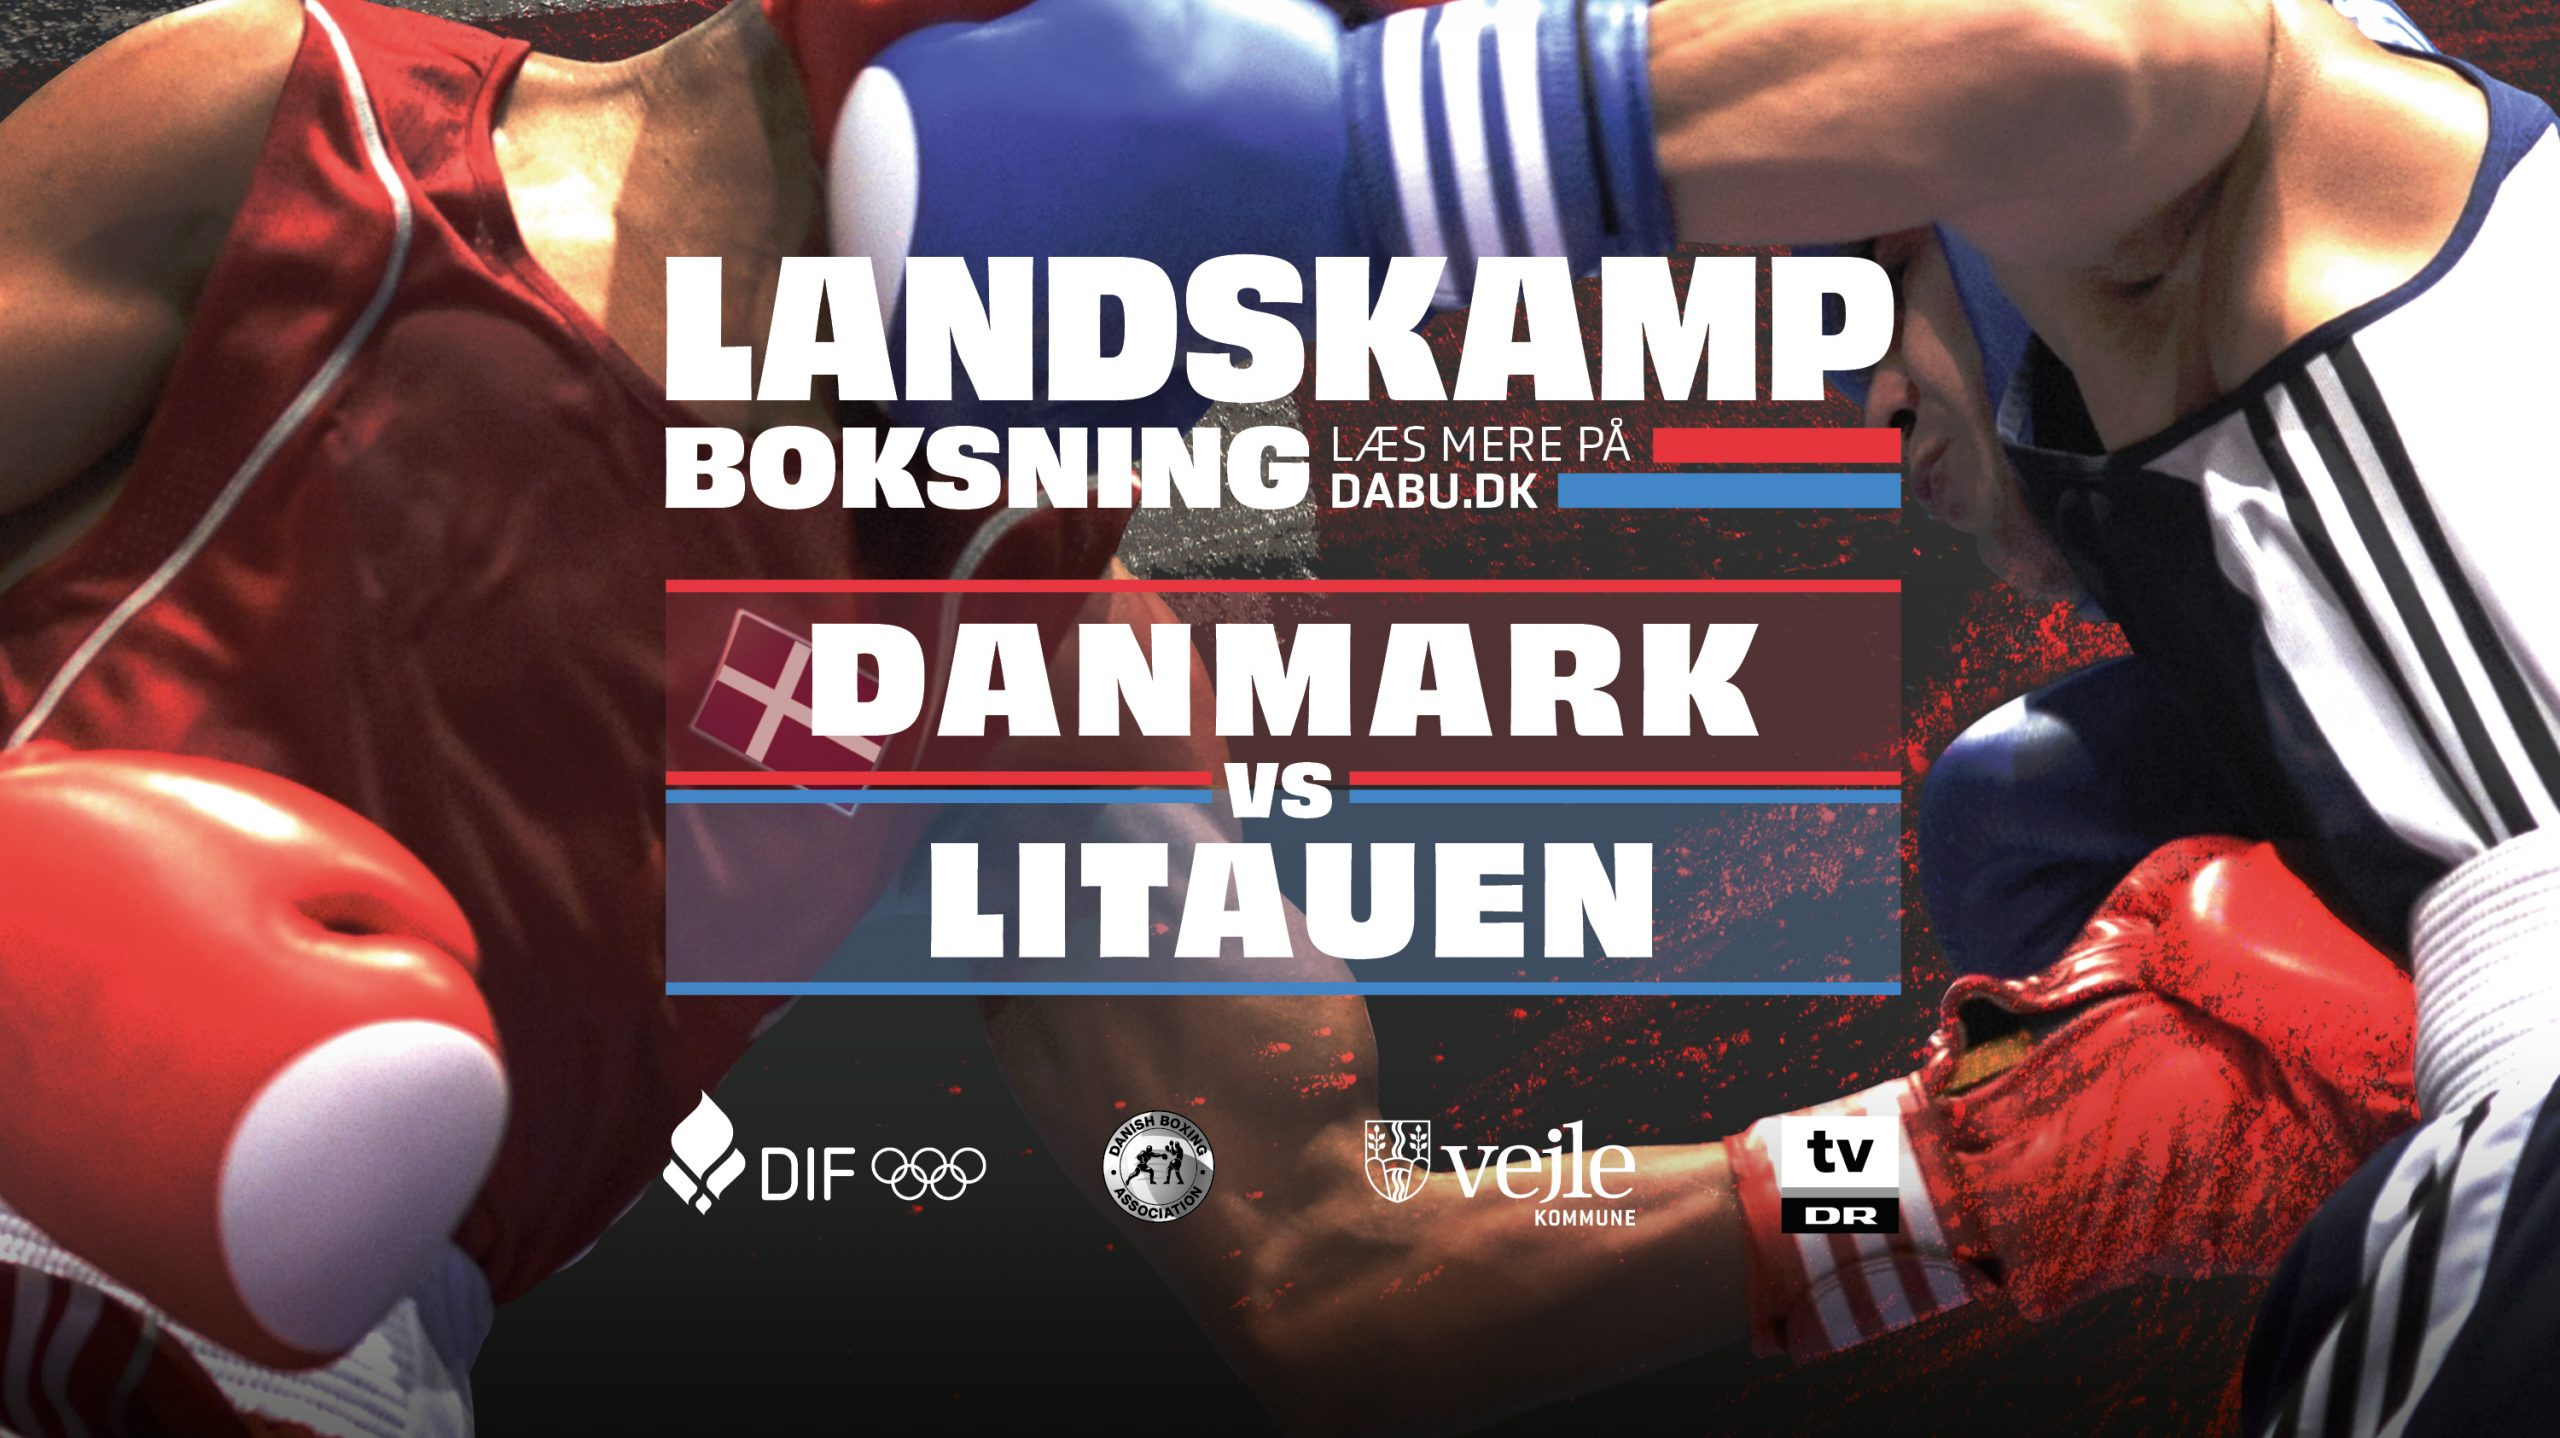 Landskamp Boksning - Danmark vs Litauen - Billetto banner